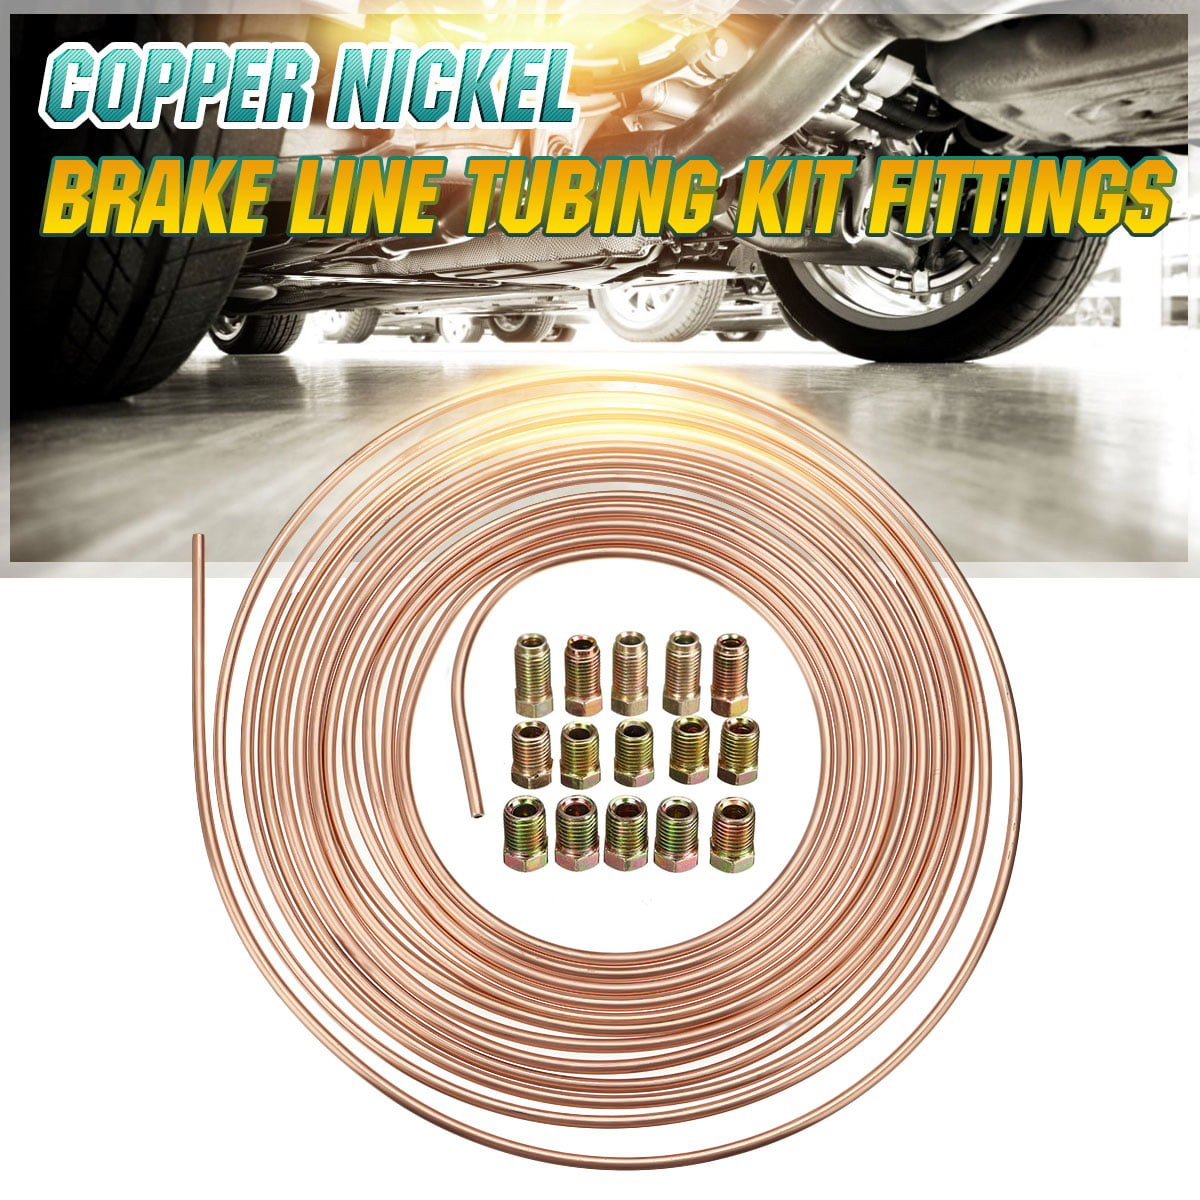 """25ft 7.62m Copper Nickel Brake Line Tubing Kit 3//16/"""" OD Coil Rolls With Fittings"""